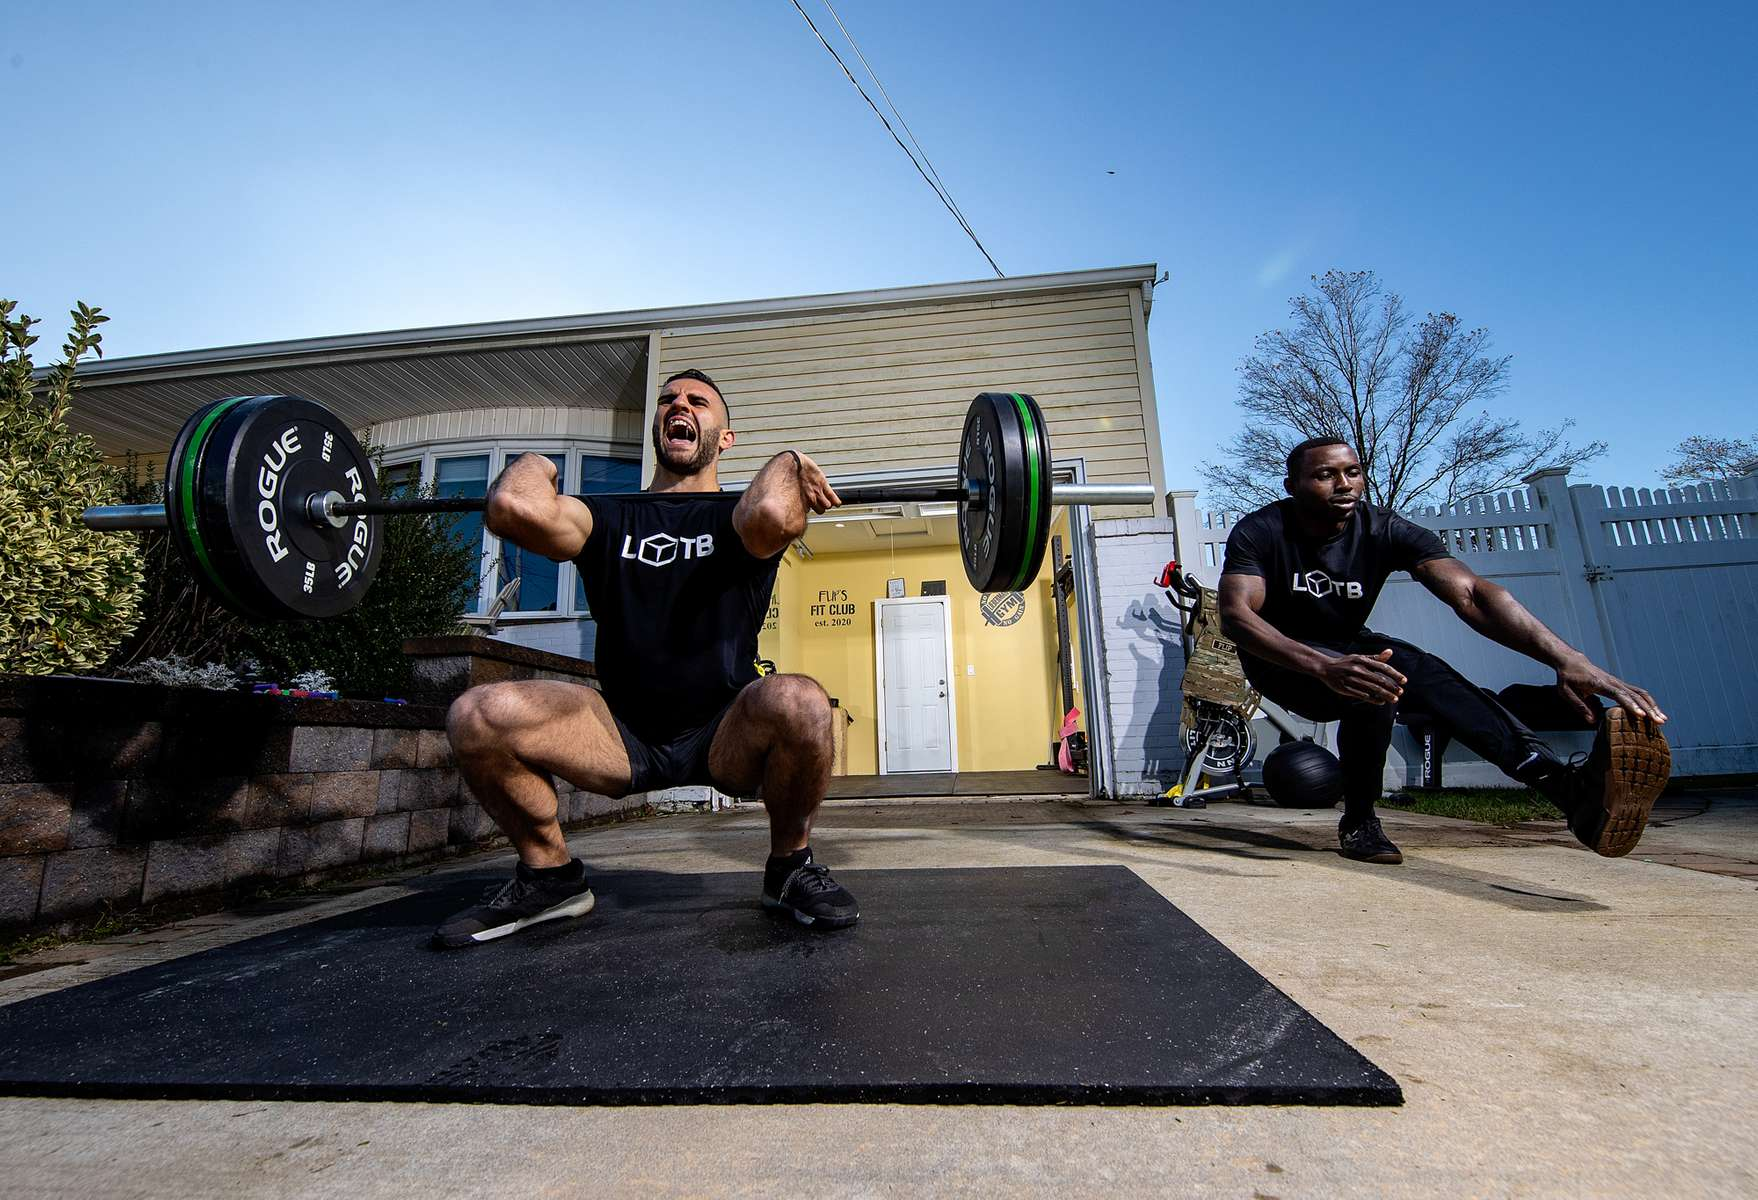 John Puccio and Raheem Yusuff exercise outside a friend's garage with their virtual Fitness Trainer Dennis Guerrero on November 14th, 2020 in Oceanside, New York.  In March of 2014, Dennis Guerrero and his business partner opened a gym on Long Island. The pair shared a passion for fitness, a dream of creating a local community of like-minded people and a willingness to take a risk. Over the next six years, hundreds of members experienced and embraced a unique environment that fostered a palpable energy, helping athletes of all ages and abilities reach their potential.  The gym became a place to share achievements, work through losses and overcome illness. But like so many other businesses, it seemingly had no way of overcoming the financial impact and ongoing uncertainty of a global pandemic. With the arrival of Covid-19, the gym shut its doors back in March, with no idea when it would reopen. The owners, though, were far from done. They lent out every piece of equipment they owned to the gym's members, continued to pay their staff and worked to set up outdoor classes in hopes of keeping their membership active and healthy. As the shutdown stretched on, it became clear that the physical gym was closed for good.  They have since reinvented themselves and are now called Life Outside the Box.  Their business model has changed drastically, and all their workouts have gone virtual.  The workouts are conducted by a small group of fitness trainers led by Guerrero.  The members pay a monthly fee and can take live Zoom fitness classes.  They are coached by the virtual trainers in real time.  More and more people have reconstructed their garages, spare rooms, backyards, and basements into home gyms since the COVID-19 pandemic hit the United States.